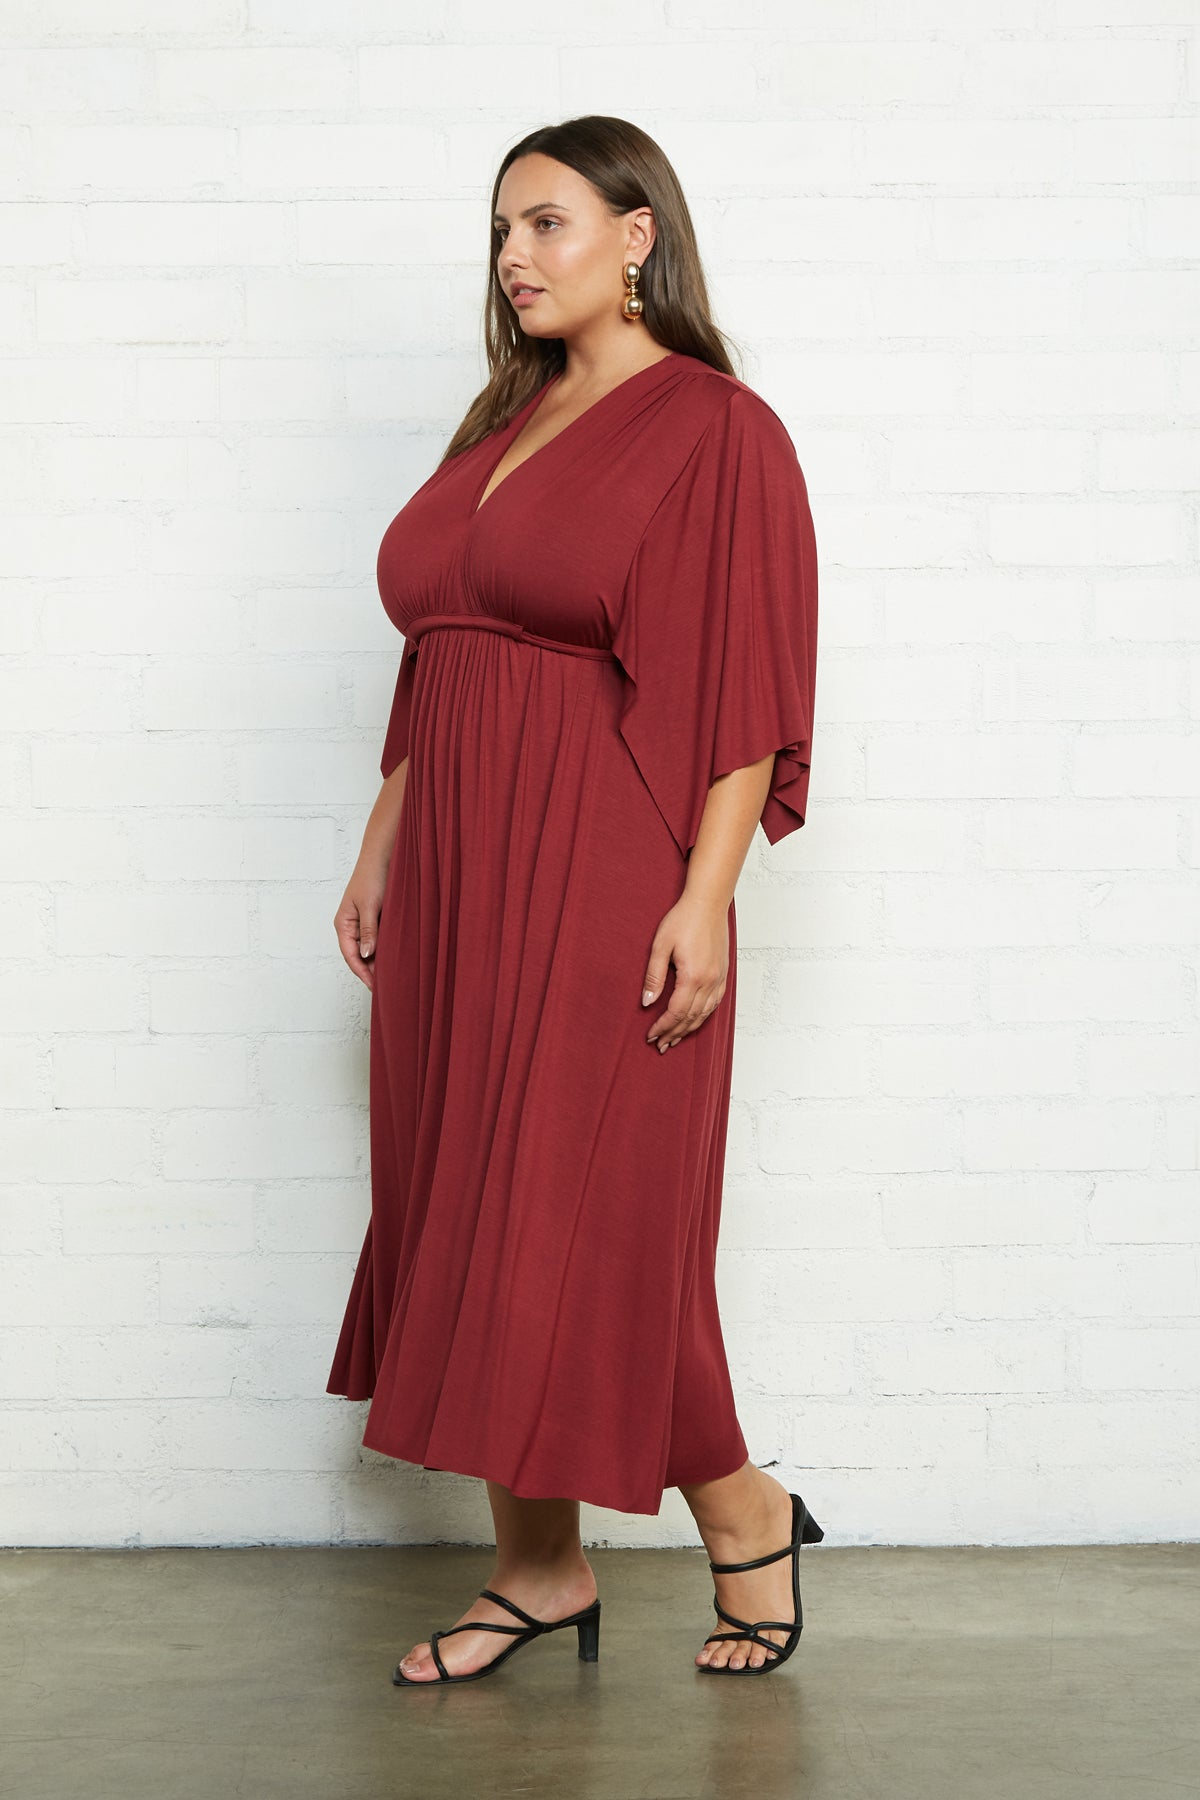 Mid-Length Caftan Dress - Gamay, Plus Size